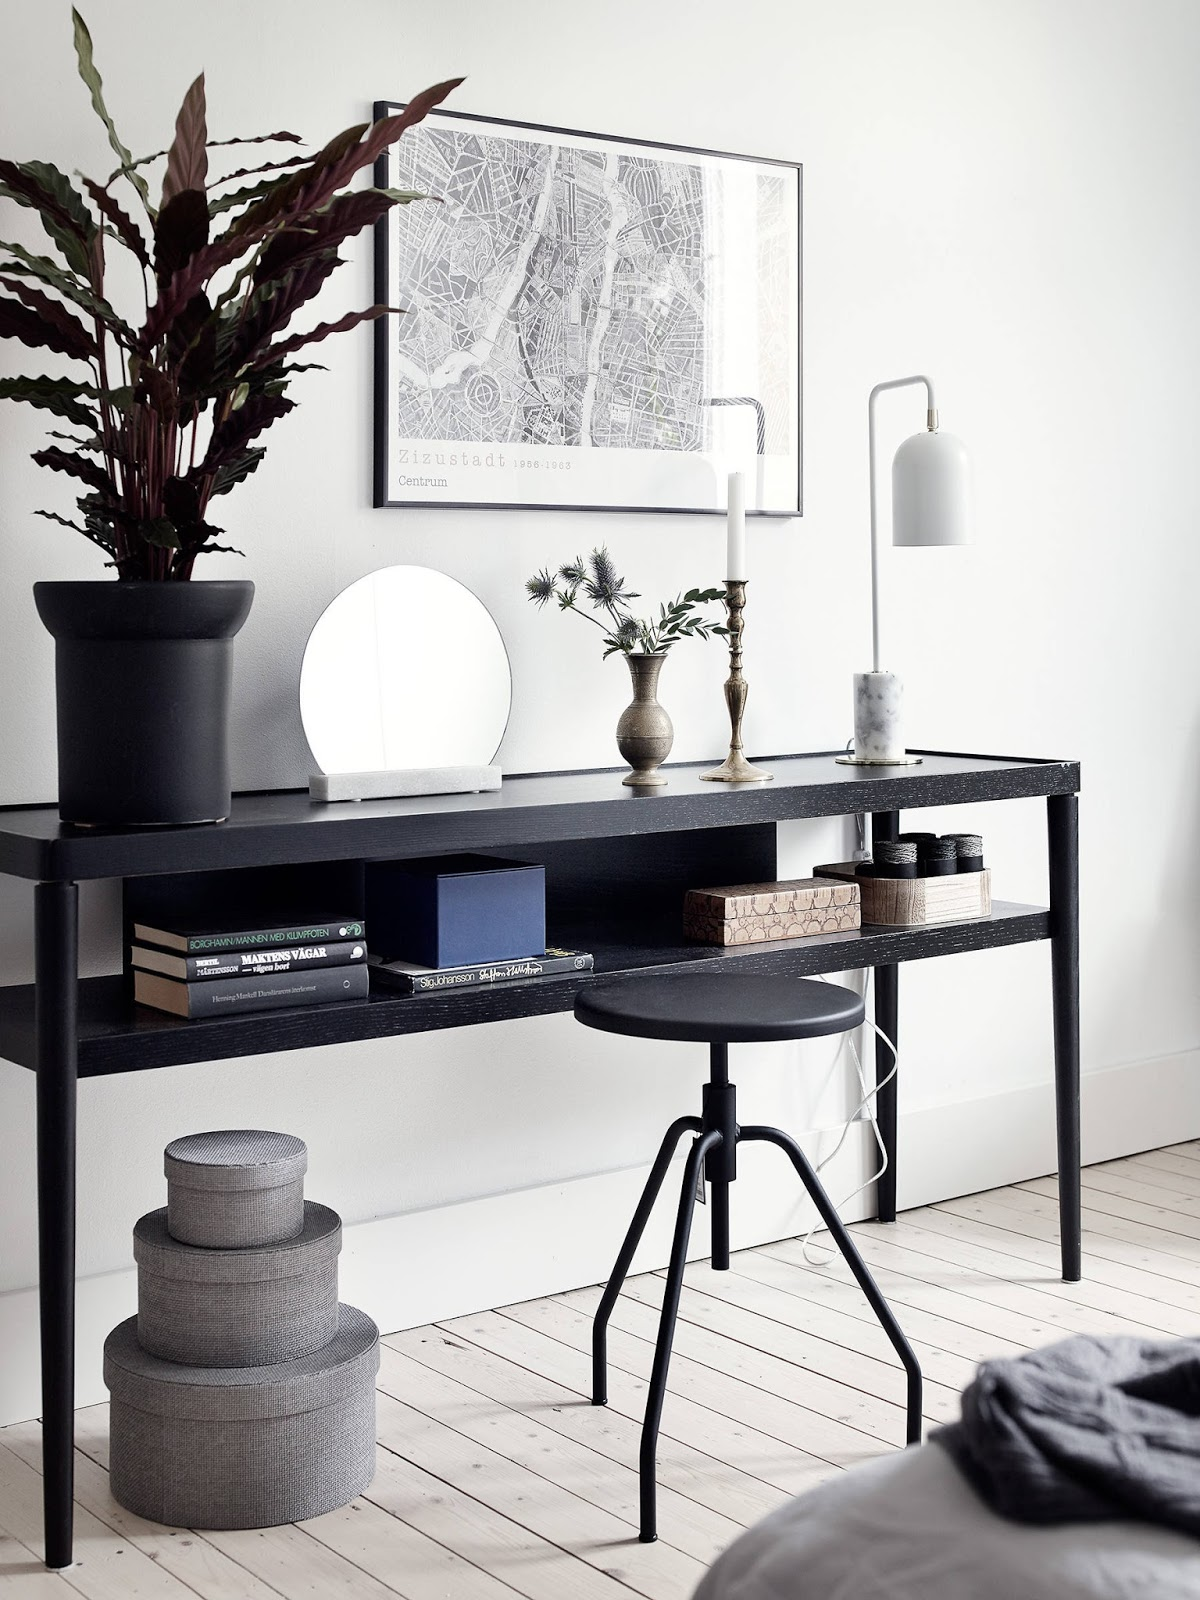 Cosy-Scandinavian-Interior-Inspiration-Popular-Pins-Get-the-Look-Desk